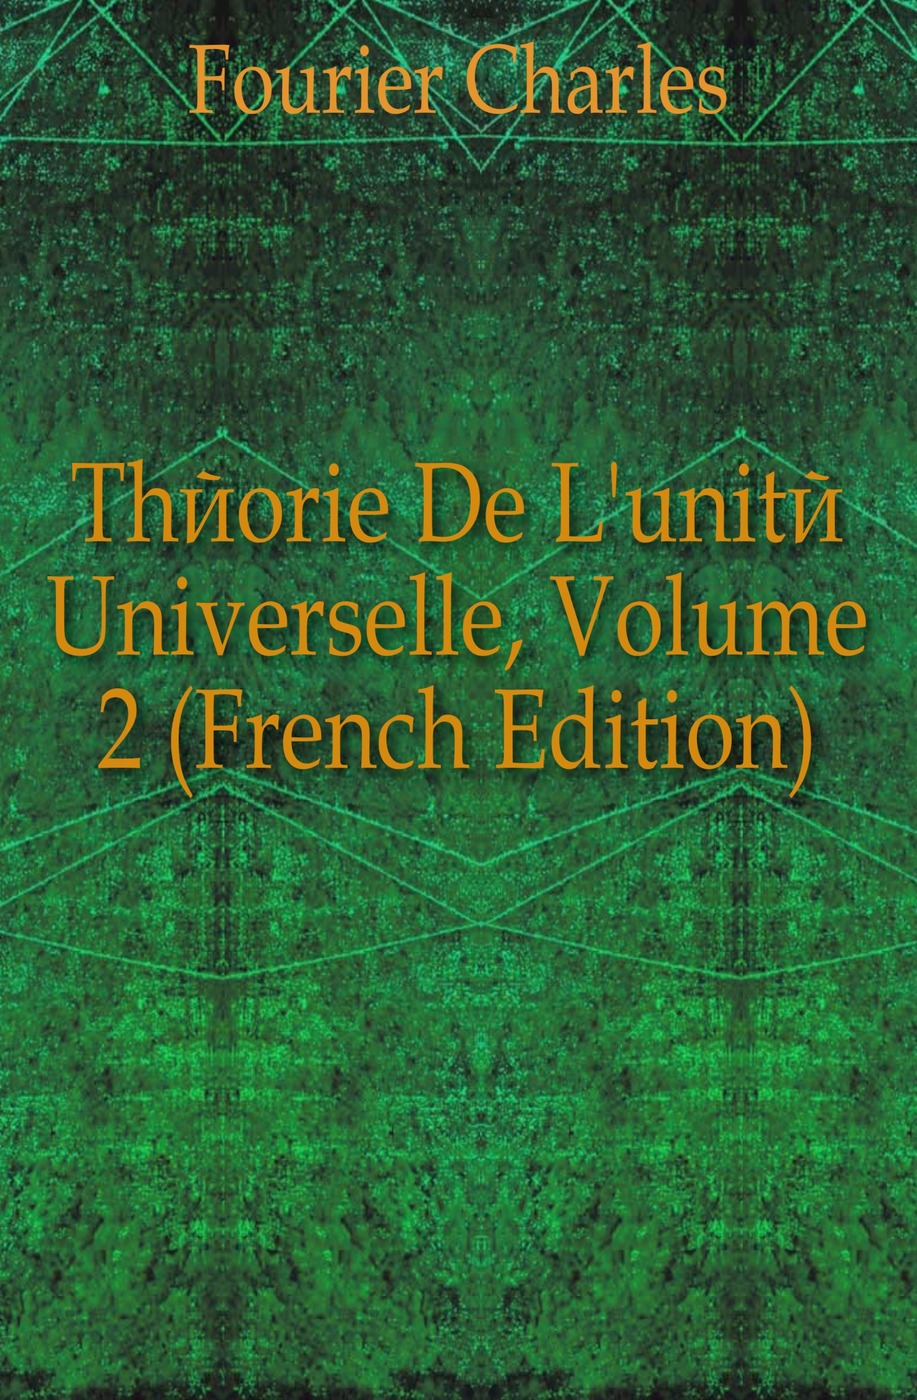 Fourier Charles Theorie De L'unite Universelle, Volume 2 (French Edition) charles blanc les beaux arts a l exposition universelle de 1878 french edition